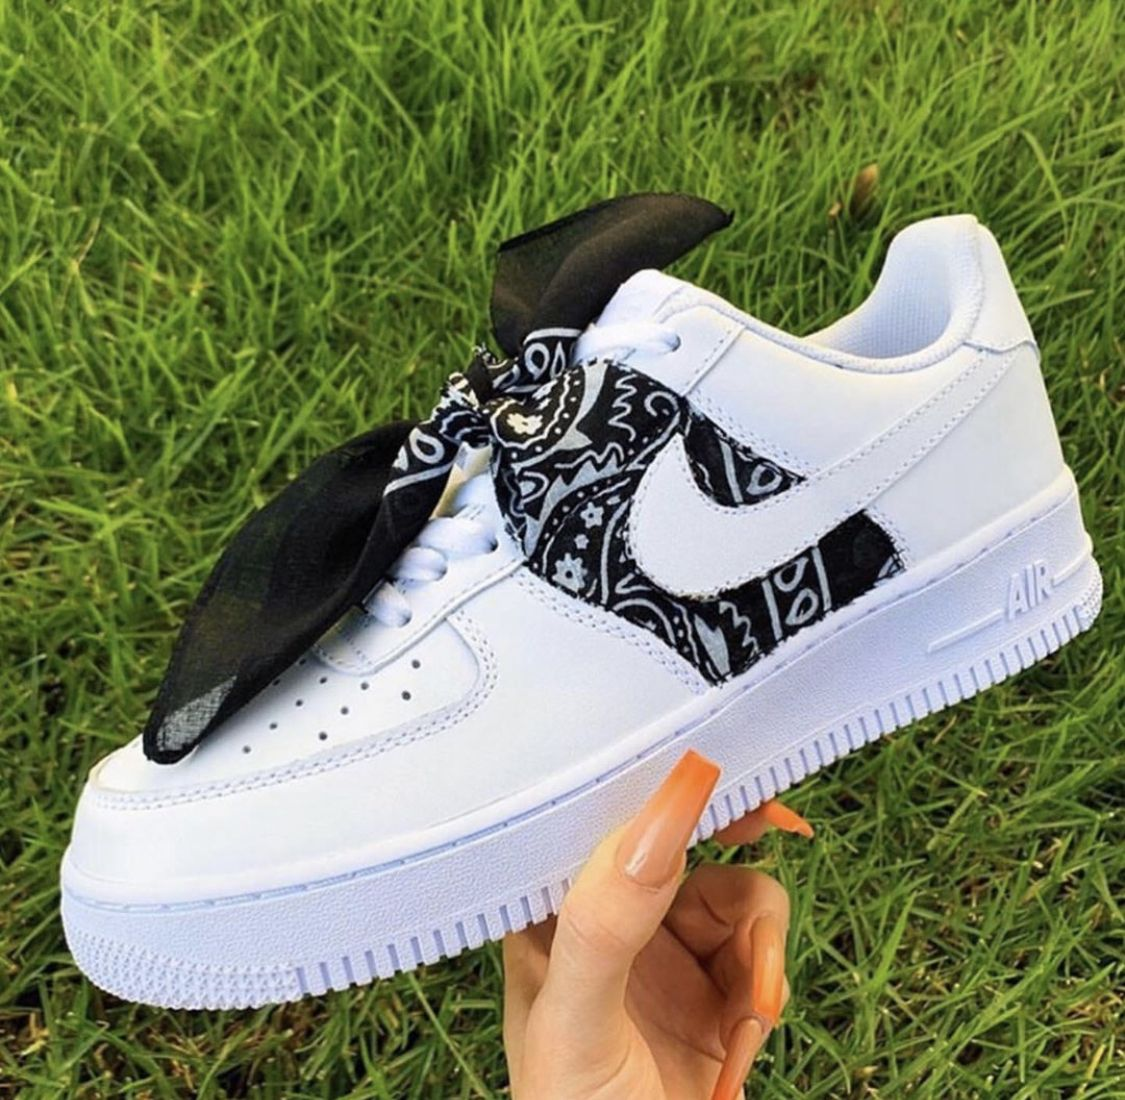 Pin by Nyleaks on ShoeLaLa in 2020 Black nike shoes